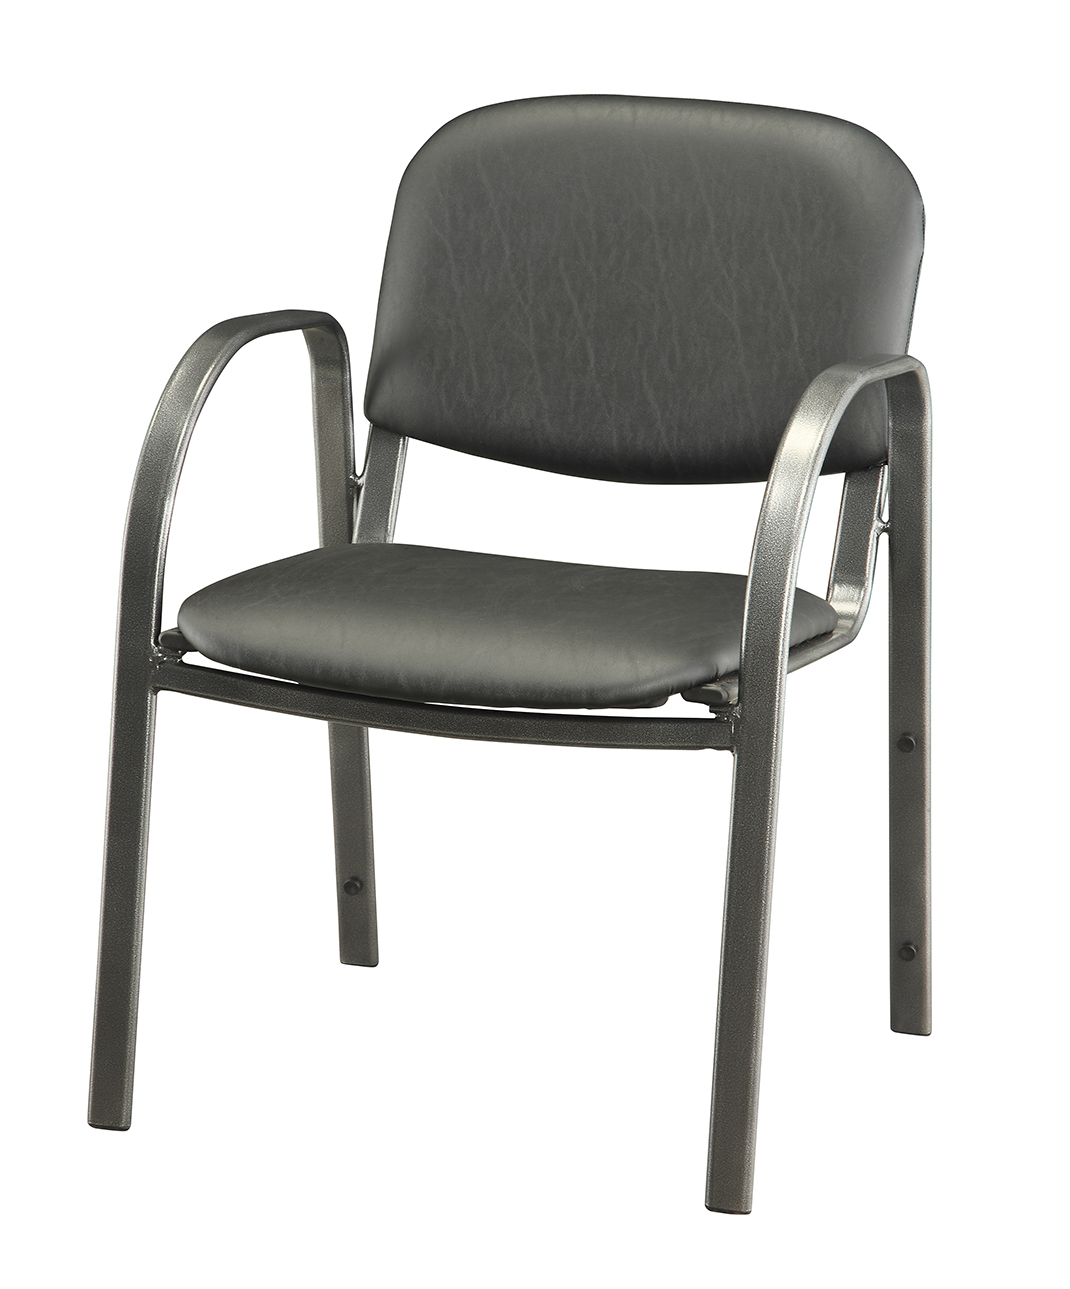 Products Categories Chairs Archive